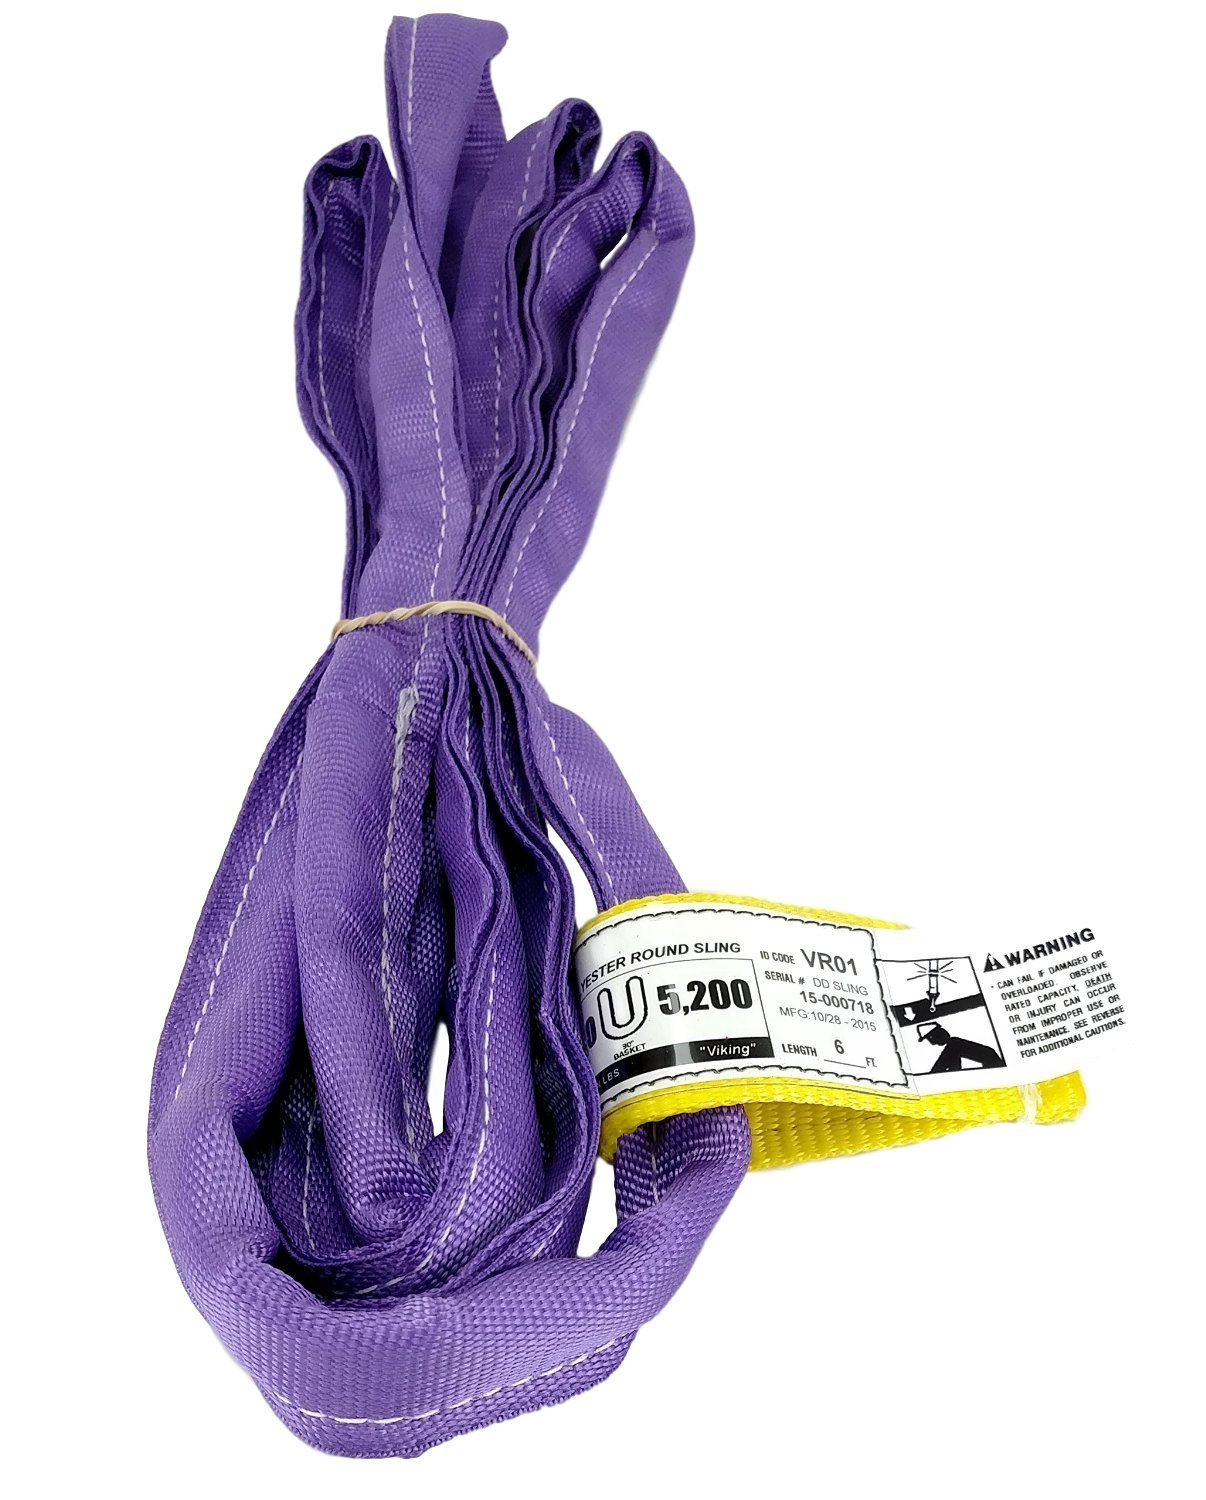 USA Made VR1 X 6' Purple Slings 4'-12' Lengths In Listing, DOUBLE PLY COVER Endless Round Poly Lifting Slings, 2,600 lbs Vertical, 2,080 lbs Choker, 5,200 lbs Basket (USA Polyester)(6 FT)